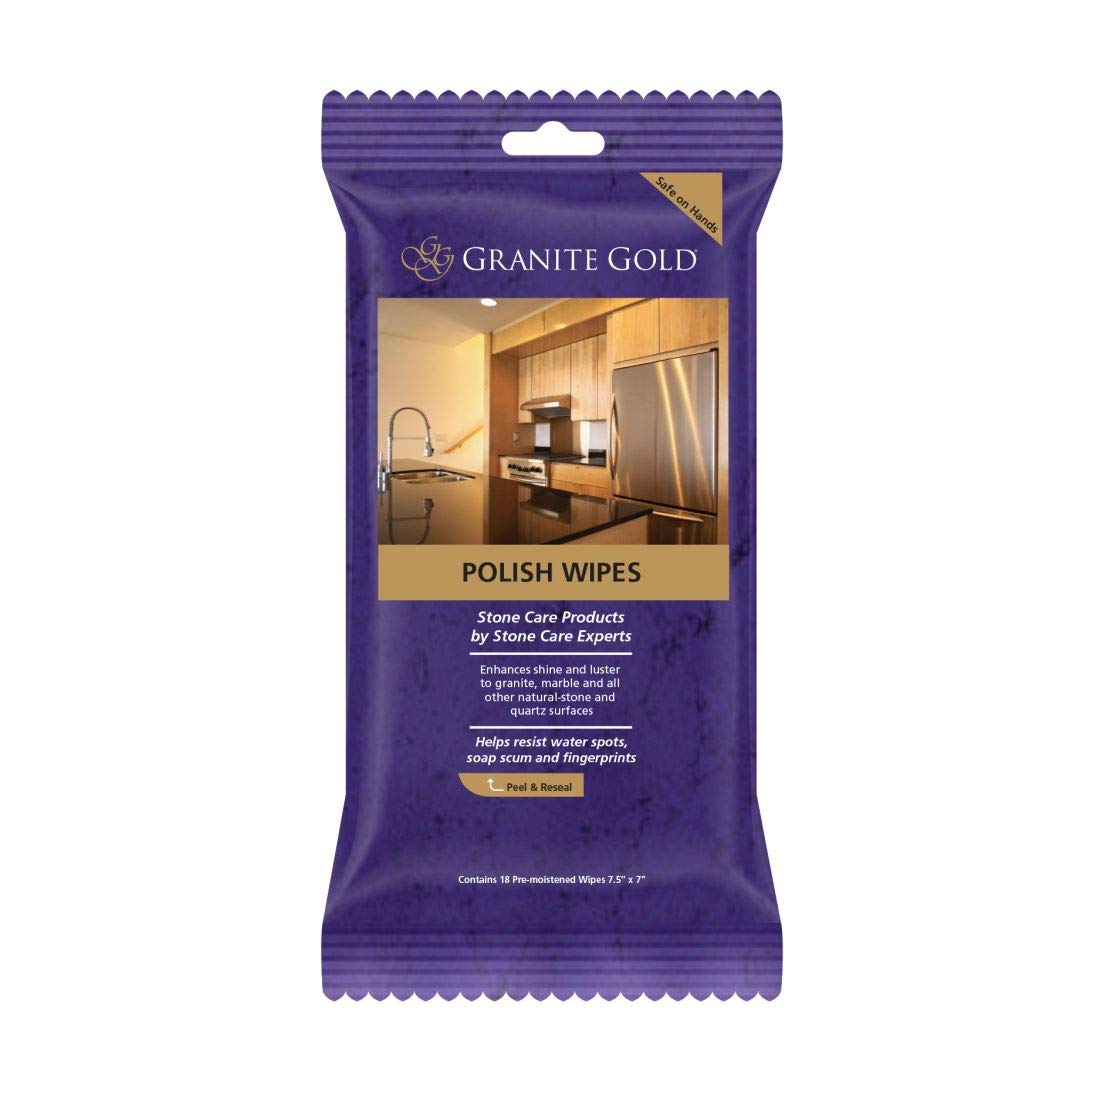 Granite Gold Maintain Shine, Luster and Resist Water Spots, Soap Scum and Fingerprints on Granite, Marble, Quartz, Natural Stone Surfaces - Made in The USA, 18 ct GG0059 Polish Wipes, Wipes-18 Count